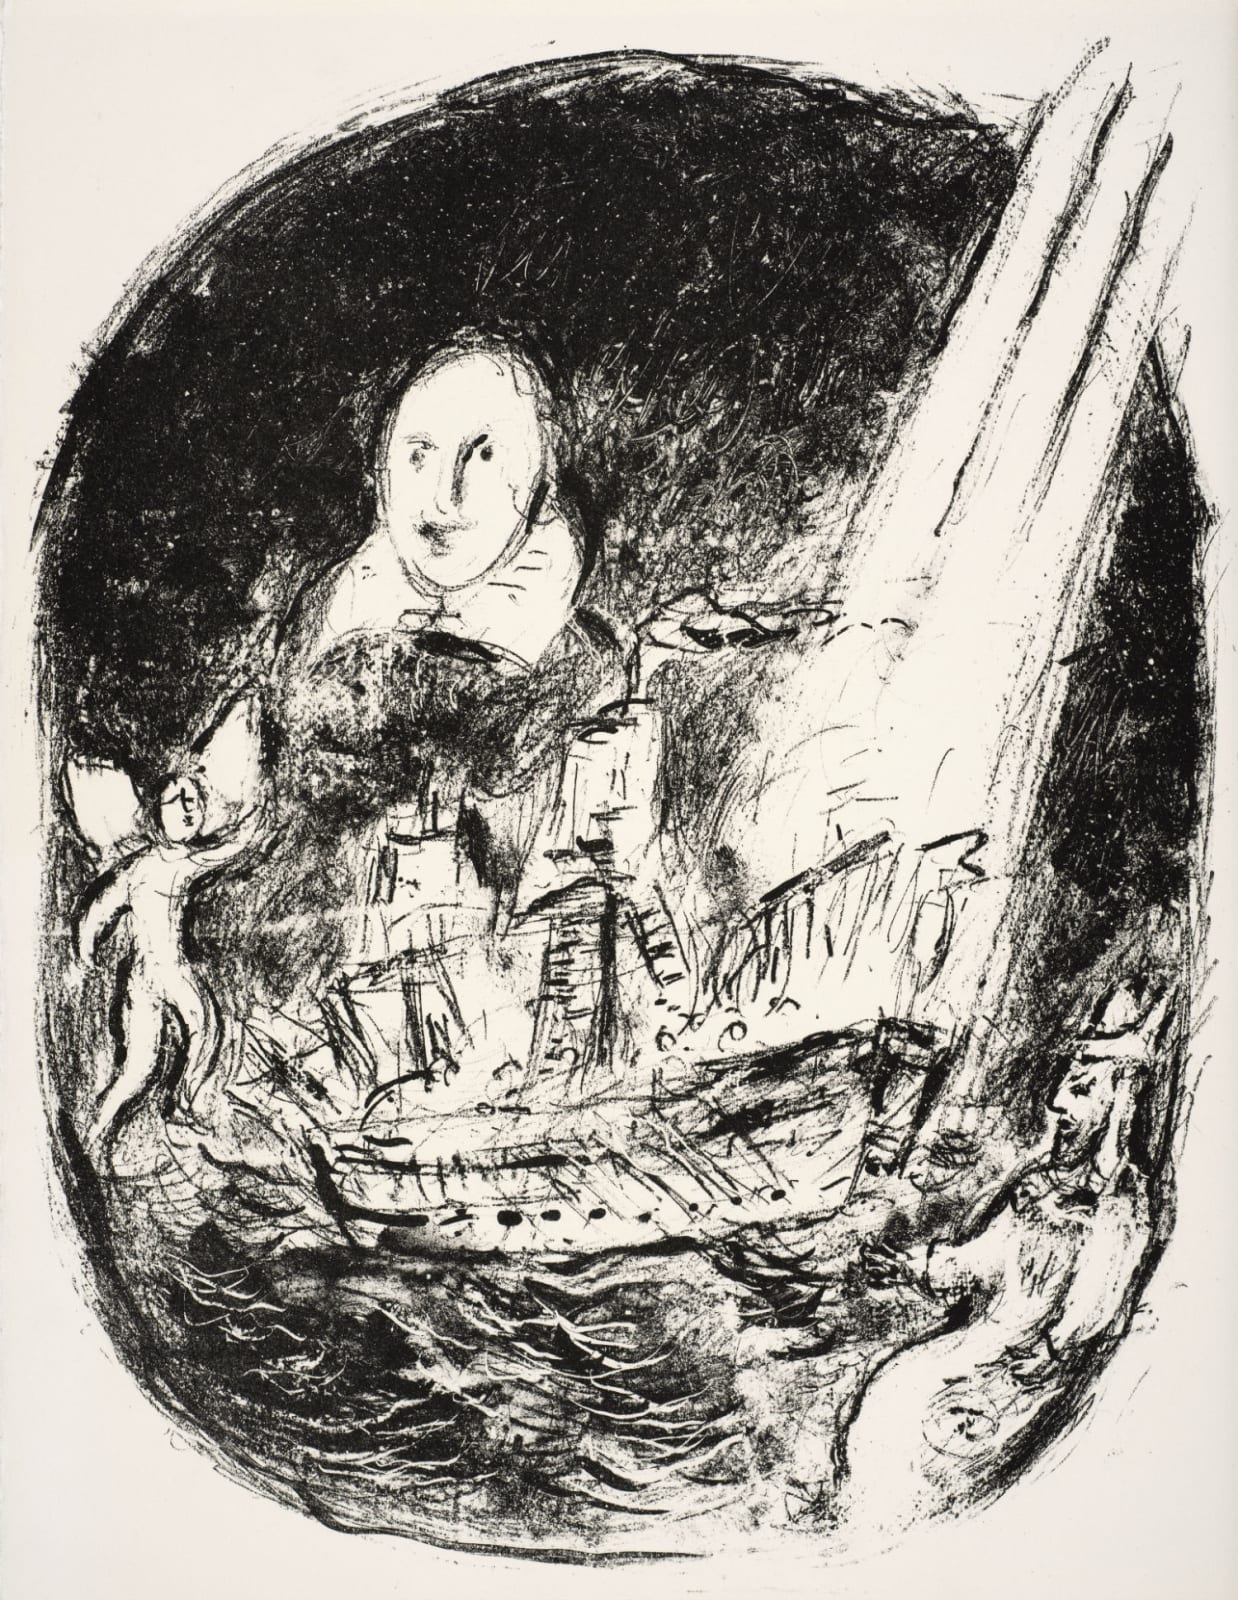 Marc Chagall (1887-1985) Shakespeare's portrait, the ship struck by lightning and the play's protagonists (Series: Shakespeare The Tempest) 1975 Lithograph 42.5 x 32.5 cm Ben Uri Collection © Marc Chagall estate To see and discover more about this artist click here